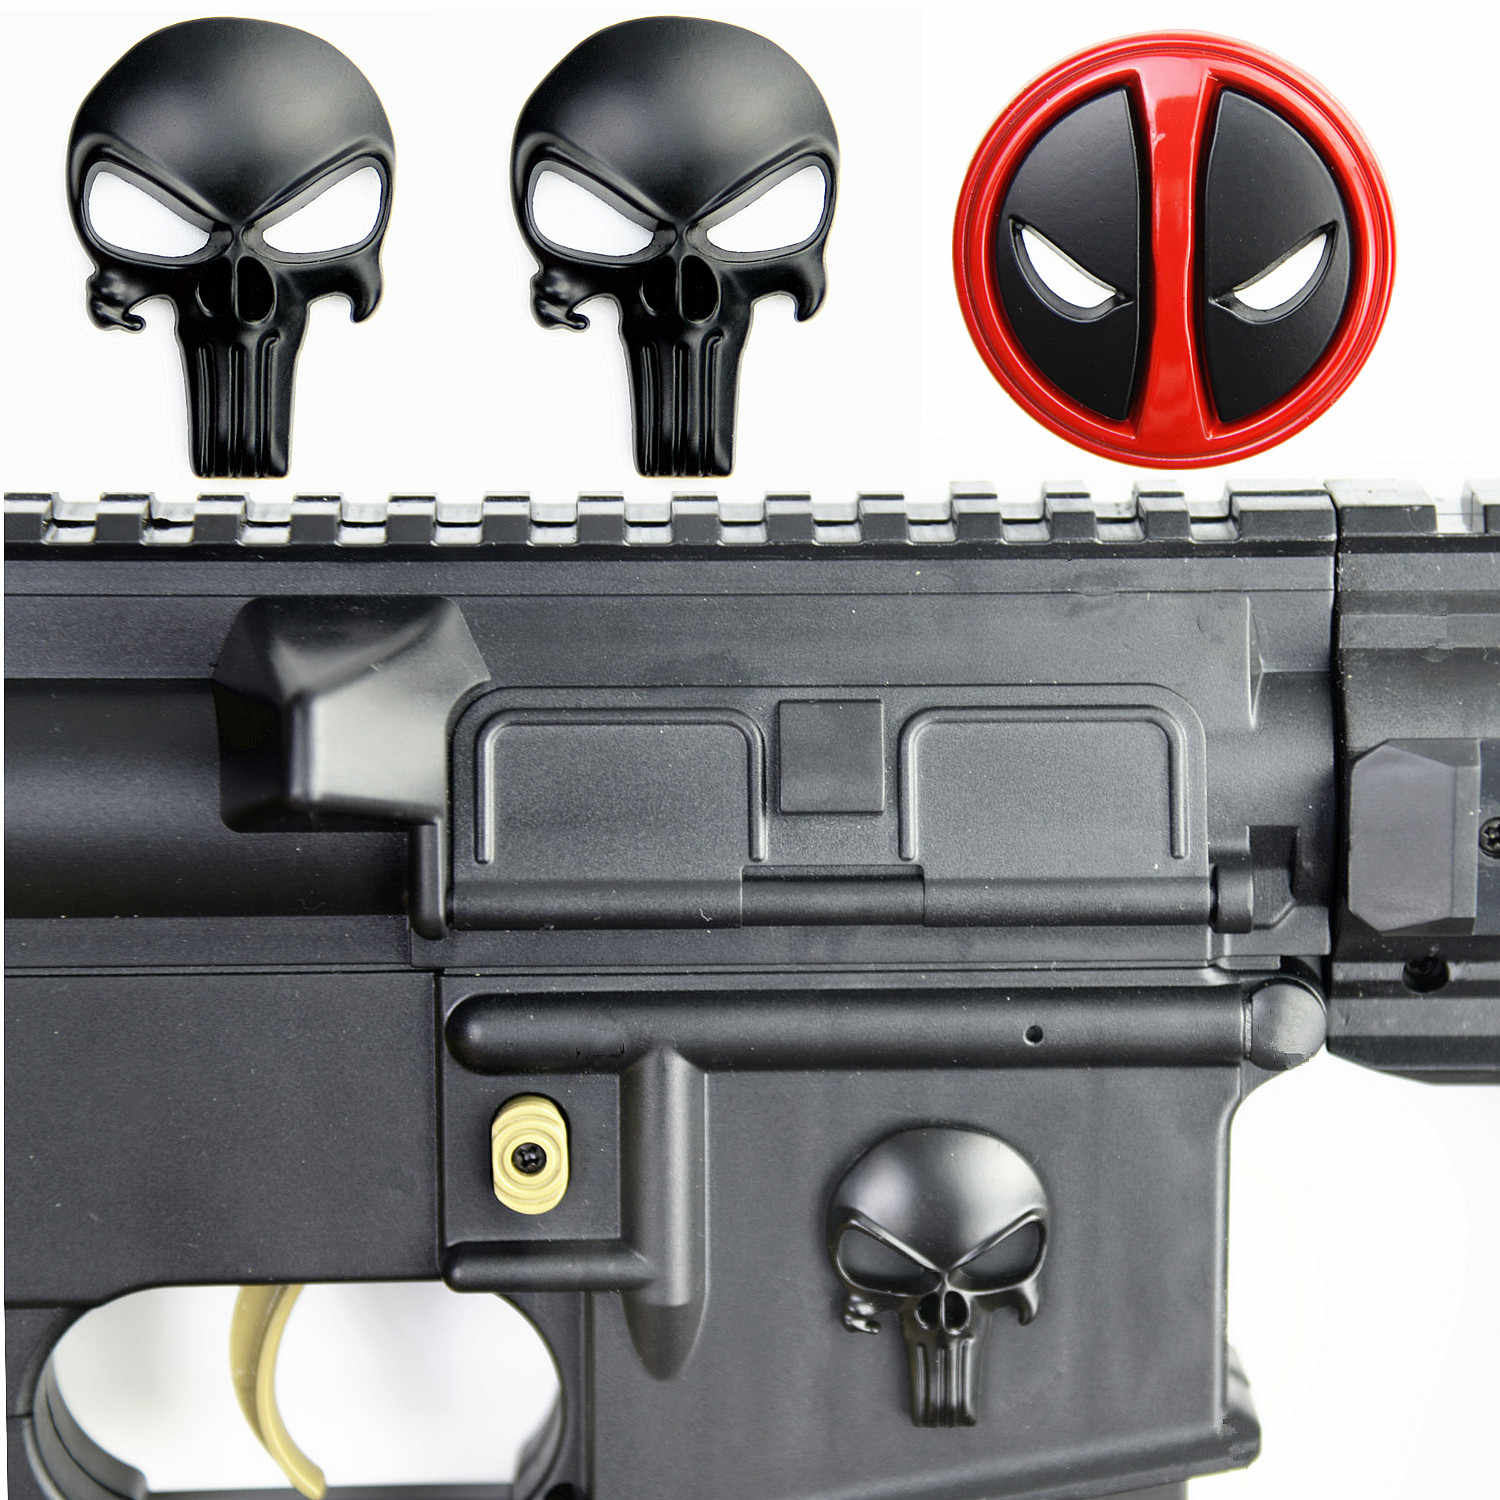 3D Punisher Schedel Deadpool Magwell Metalen Decal Badge Sticker Voor AR15 AK47 M4 M16 Airsoft Rifle Pistool Jacht Accessoires